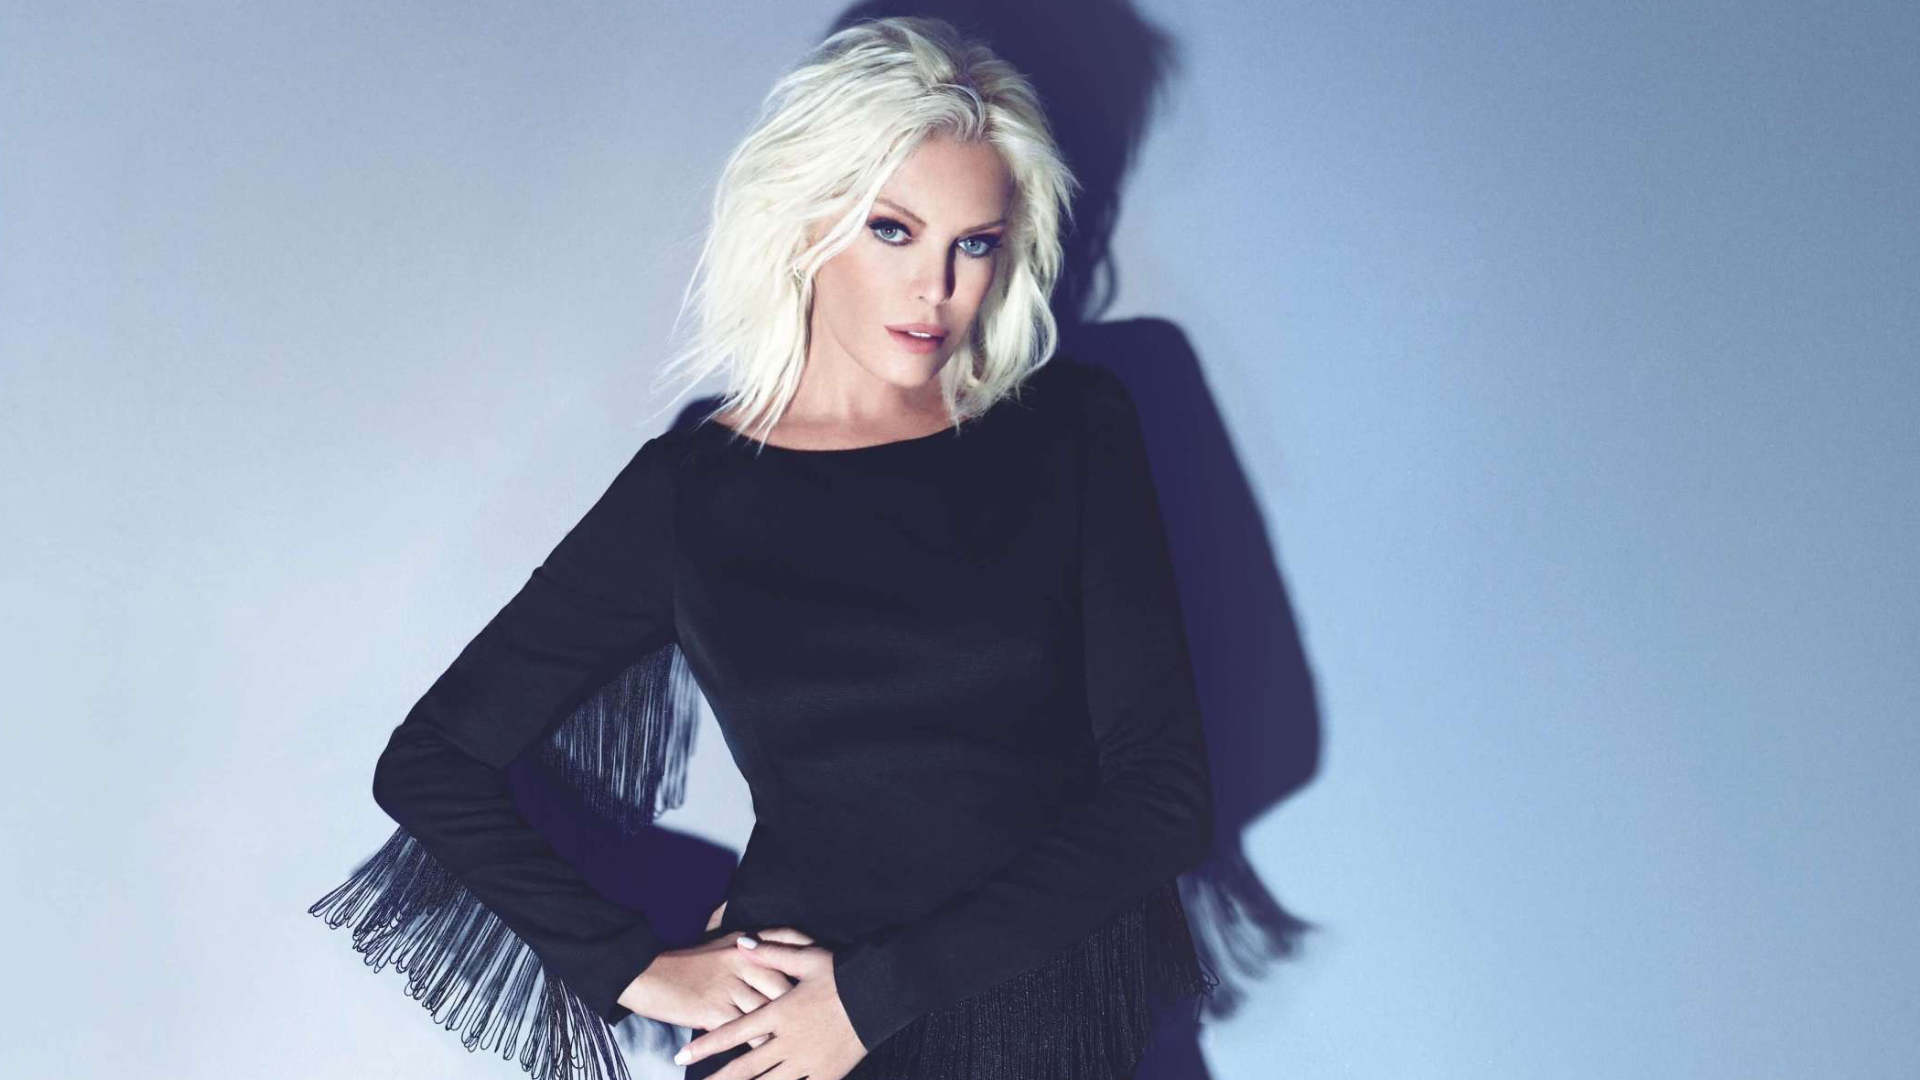 Turkish Superstar Ajda Pekkan Set To Storm the Stage At The World's Best Super Yacht Marina!